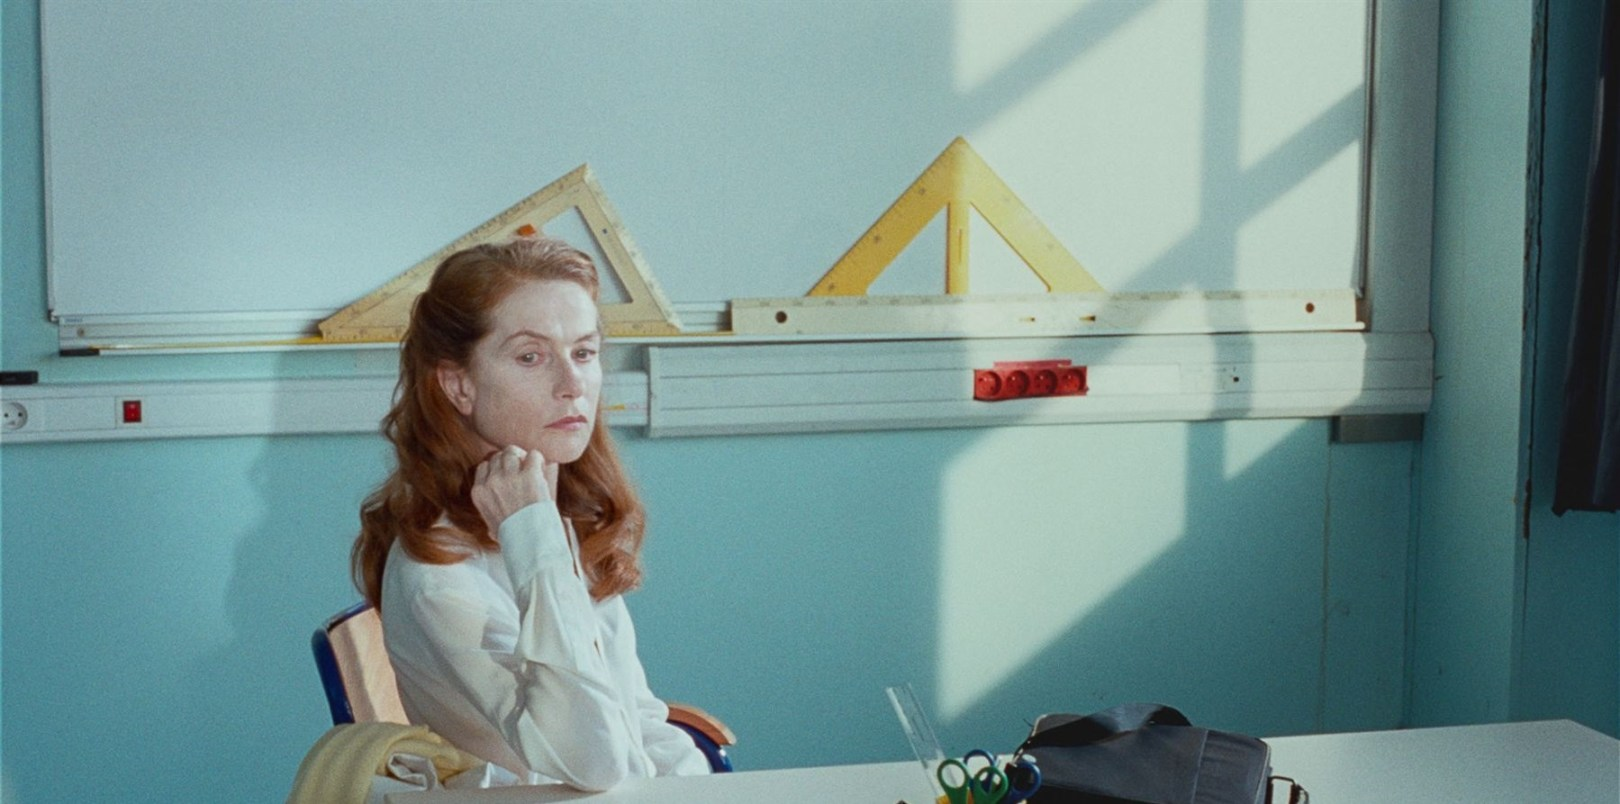 Radiant Circus Screen Guide - Films in London this week: MRS HYDE at Ciné Lumière (07 JUN).